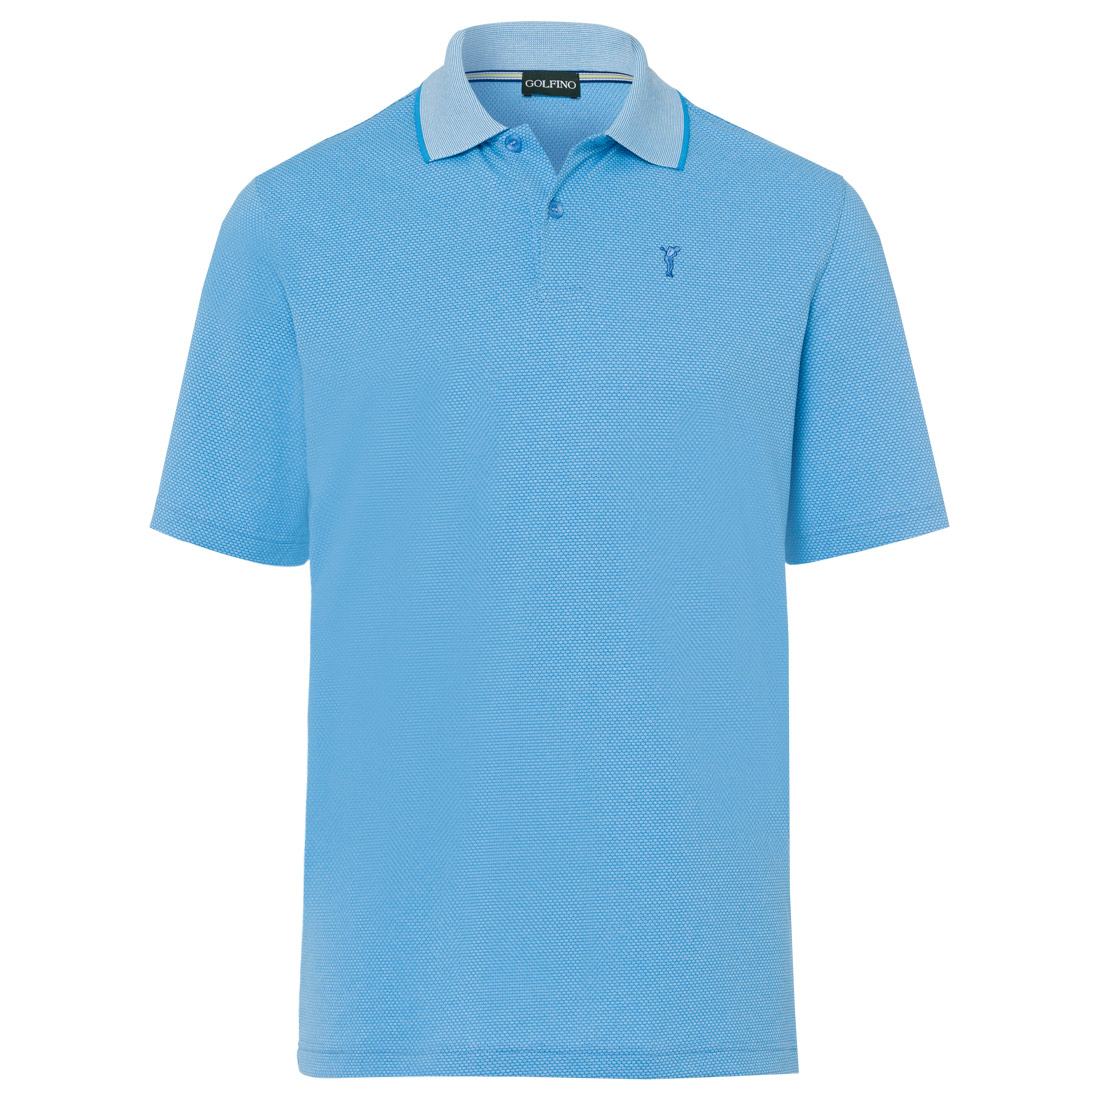 Melange Bubble Jacquard Polo